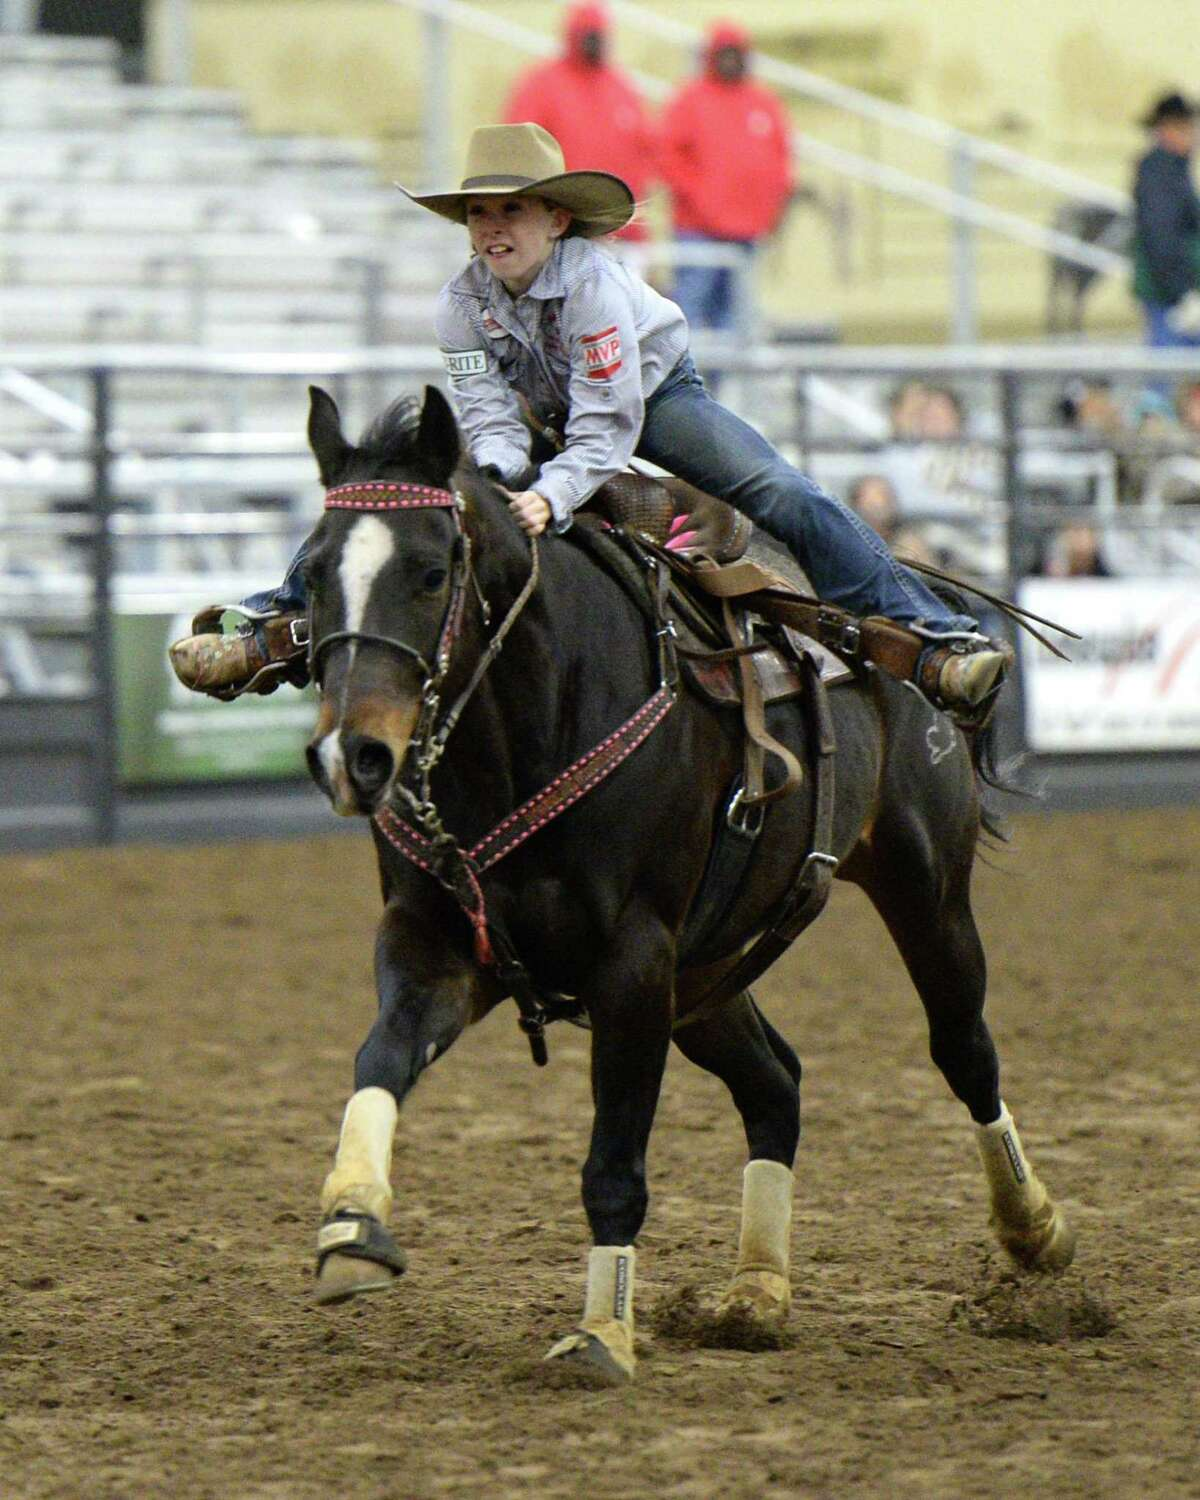 A rider participates in the barrel racing competition during the 77th Annual Katy ISD FFA Livestock Show and Katy Rodeo at the Gerald D. Young Agricultural Sciences Center in Katy, TX on Thursday, February 13, 2020.